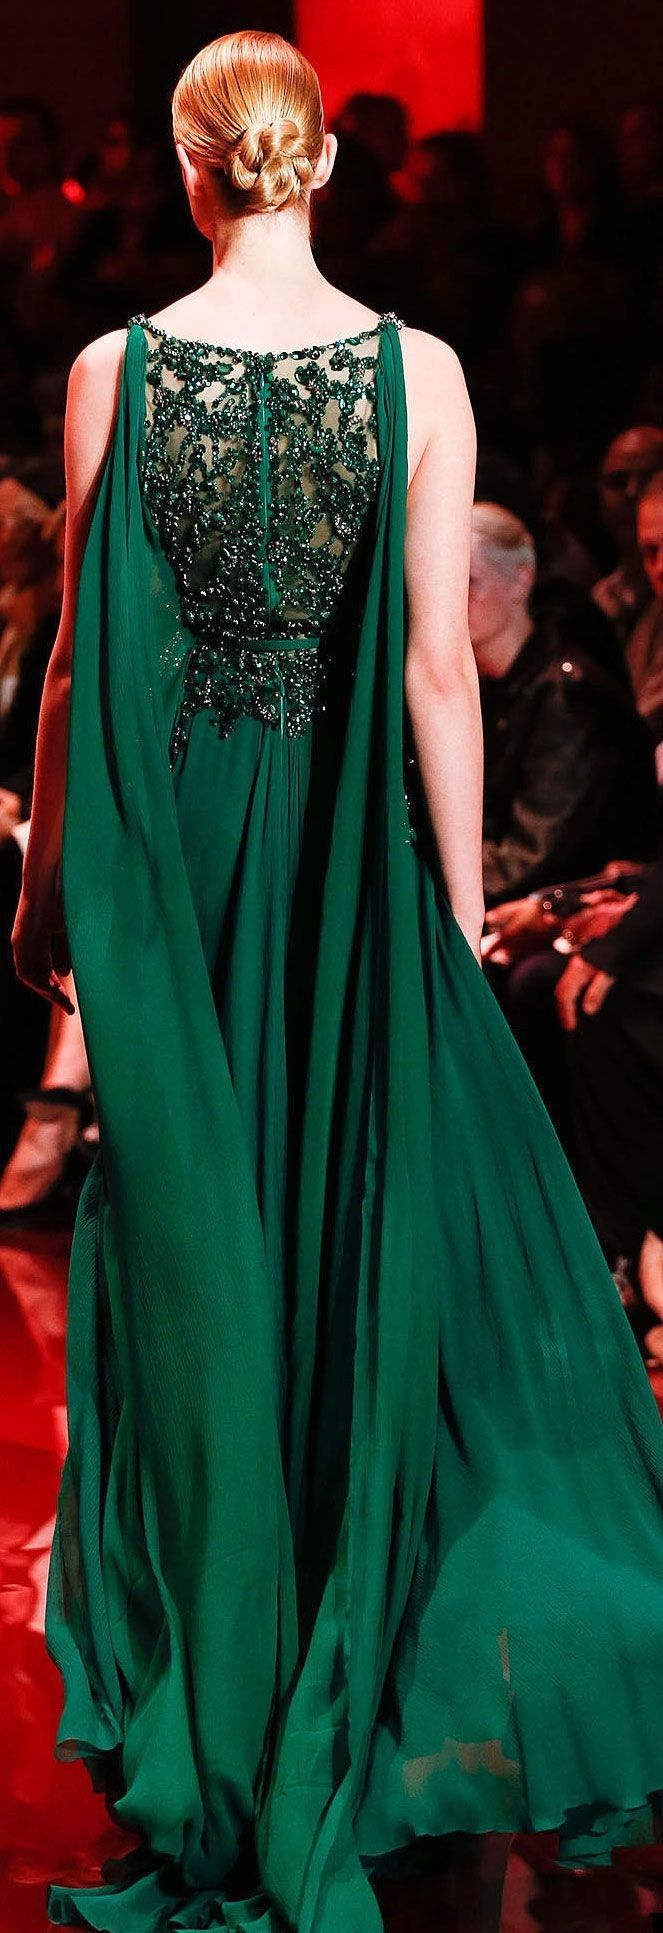 Elie Saab | Dresses, Emerald green dresses, Fashion